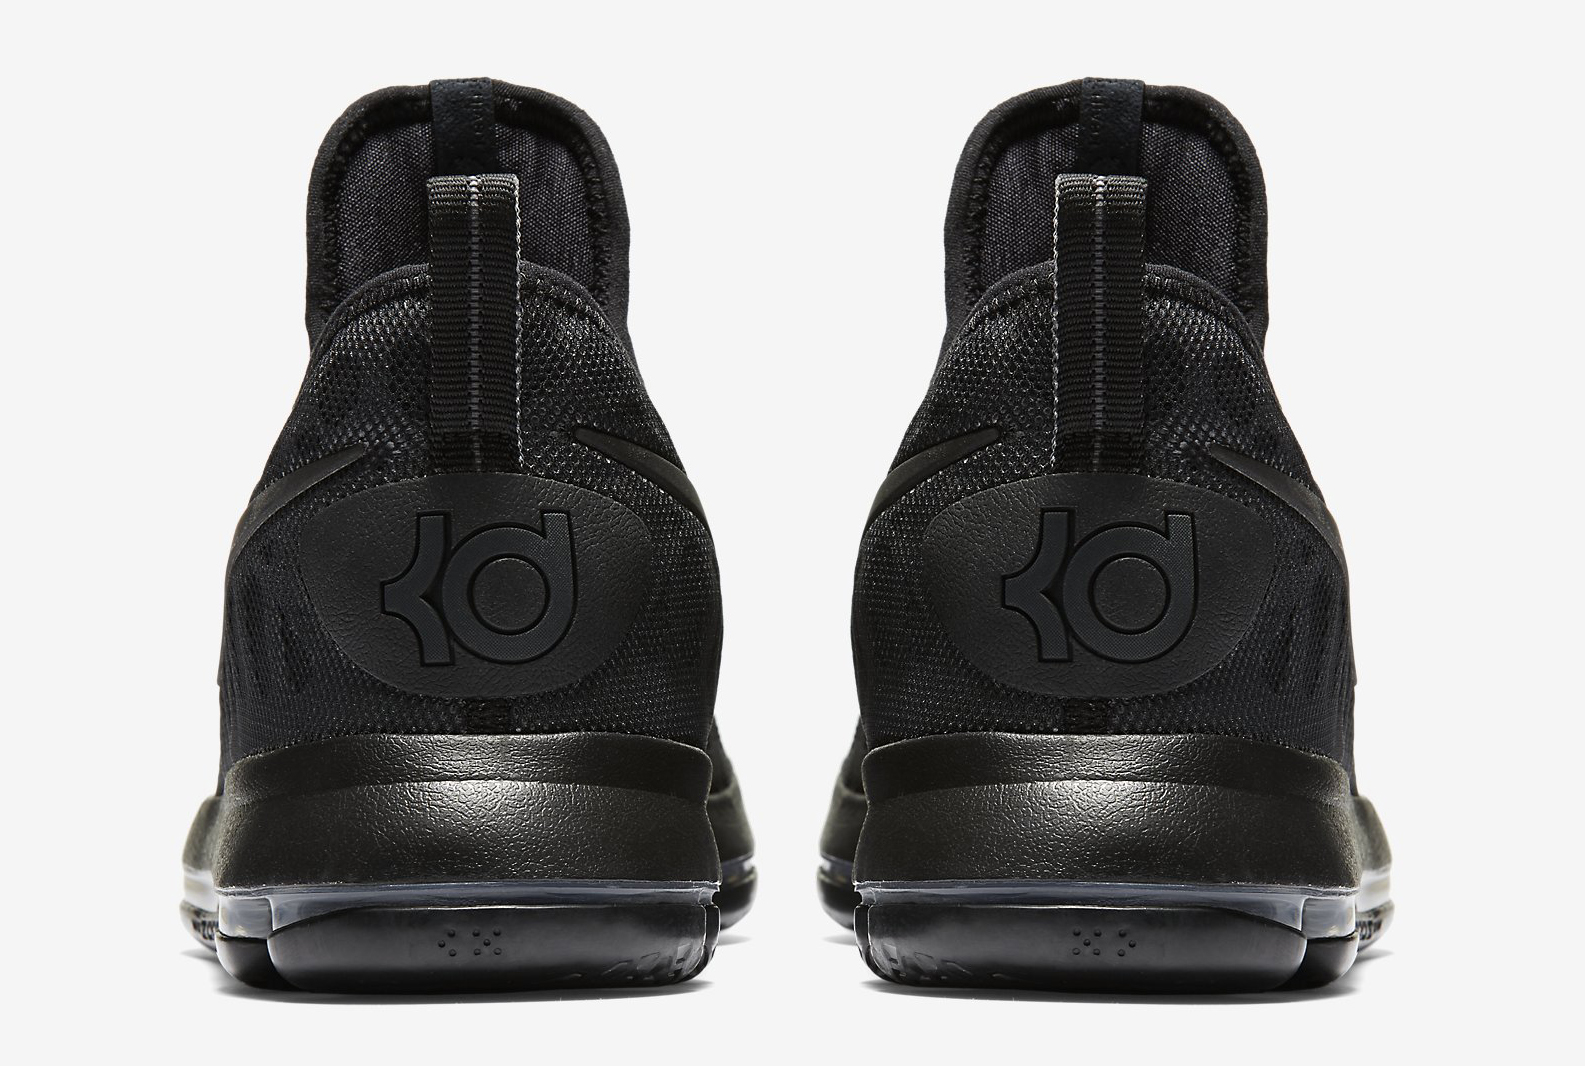 Nike KD 9 Black Space 843392-001 Heel